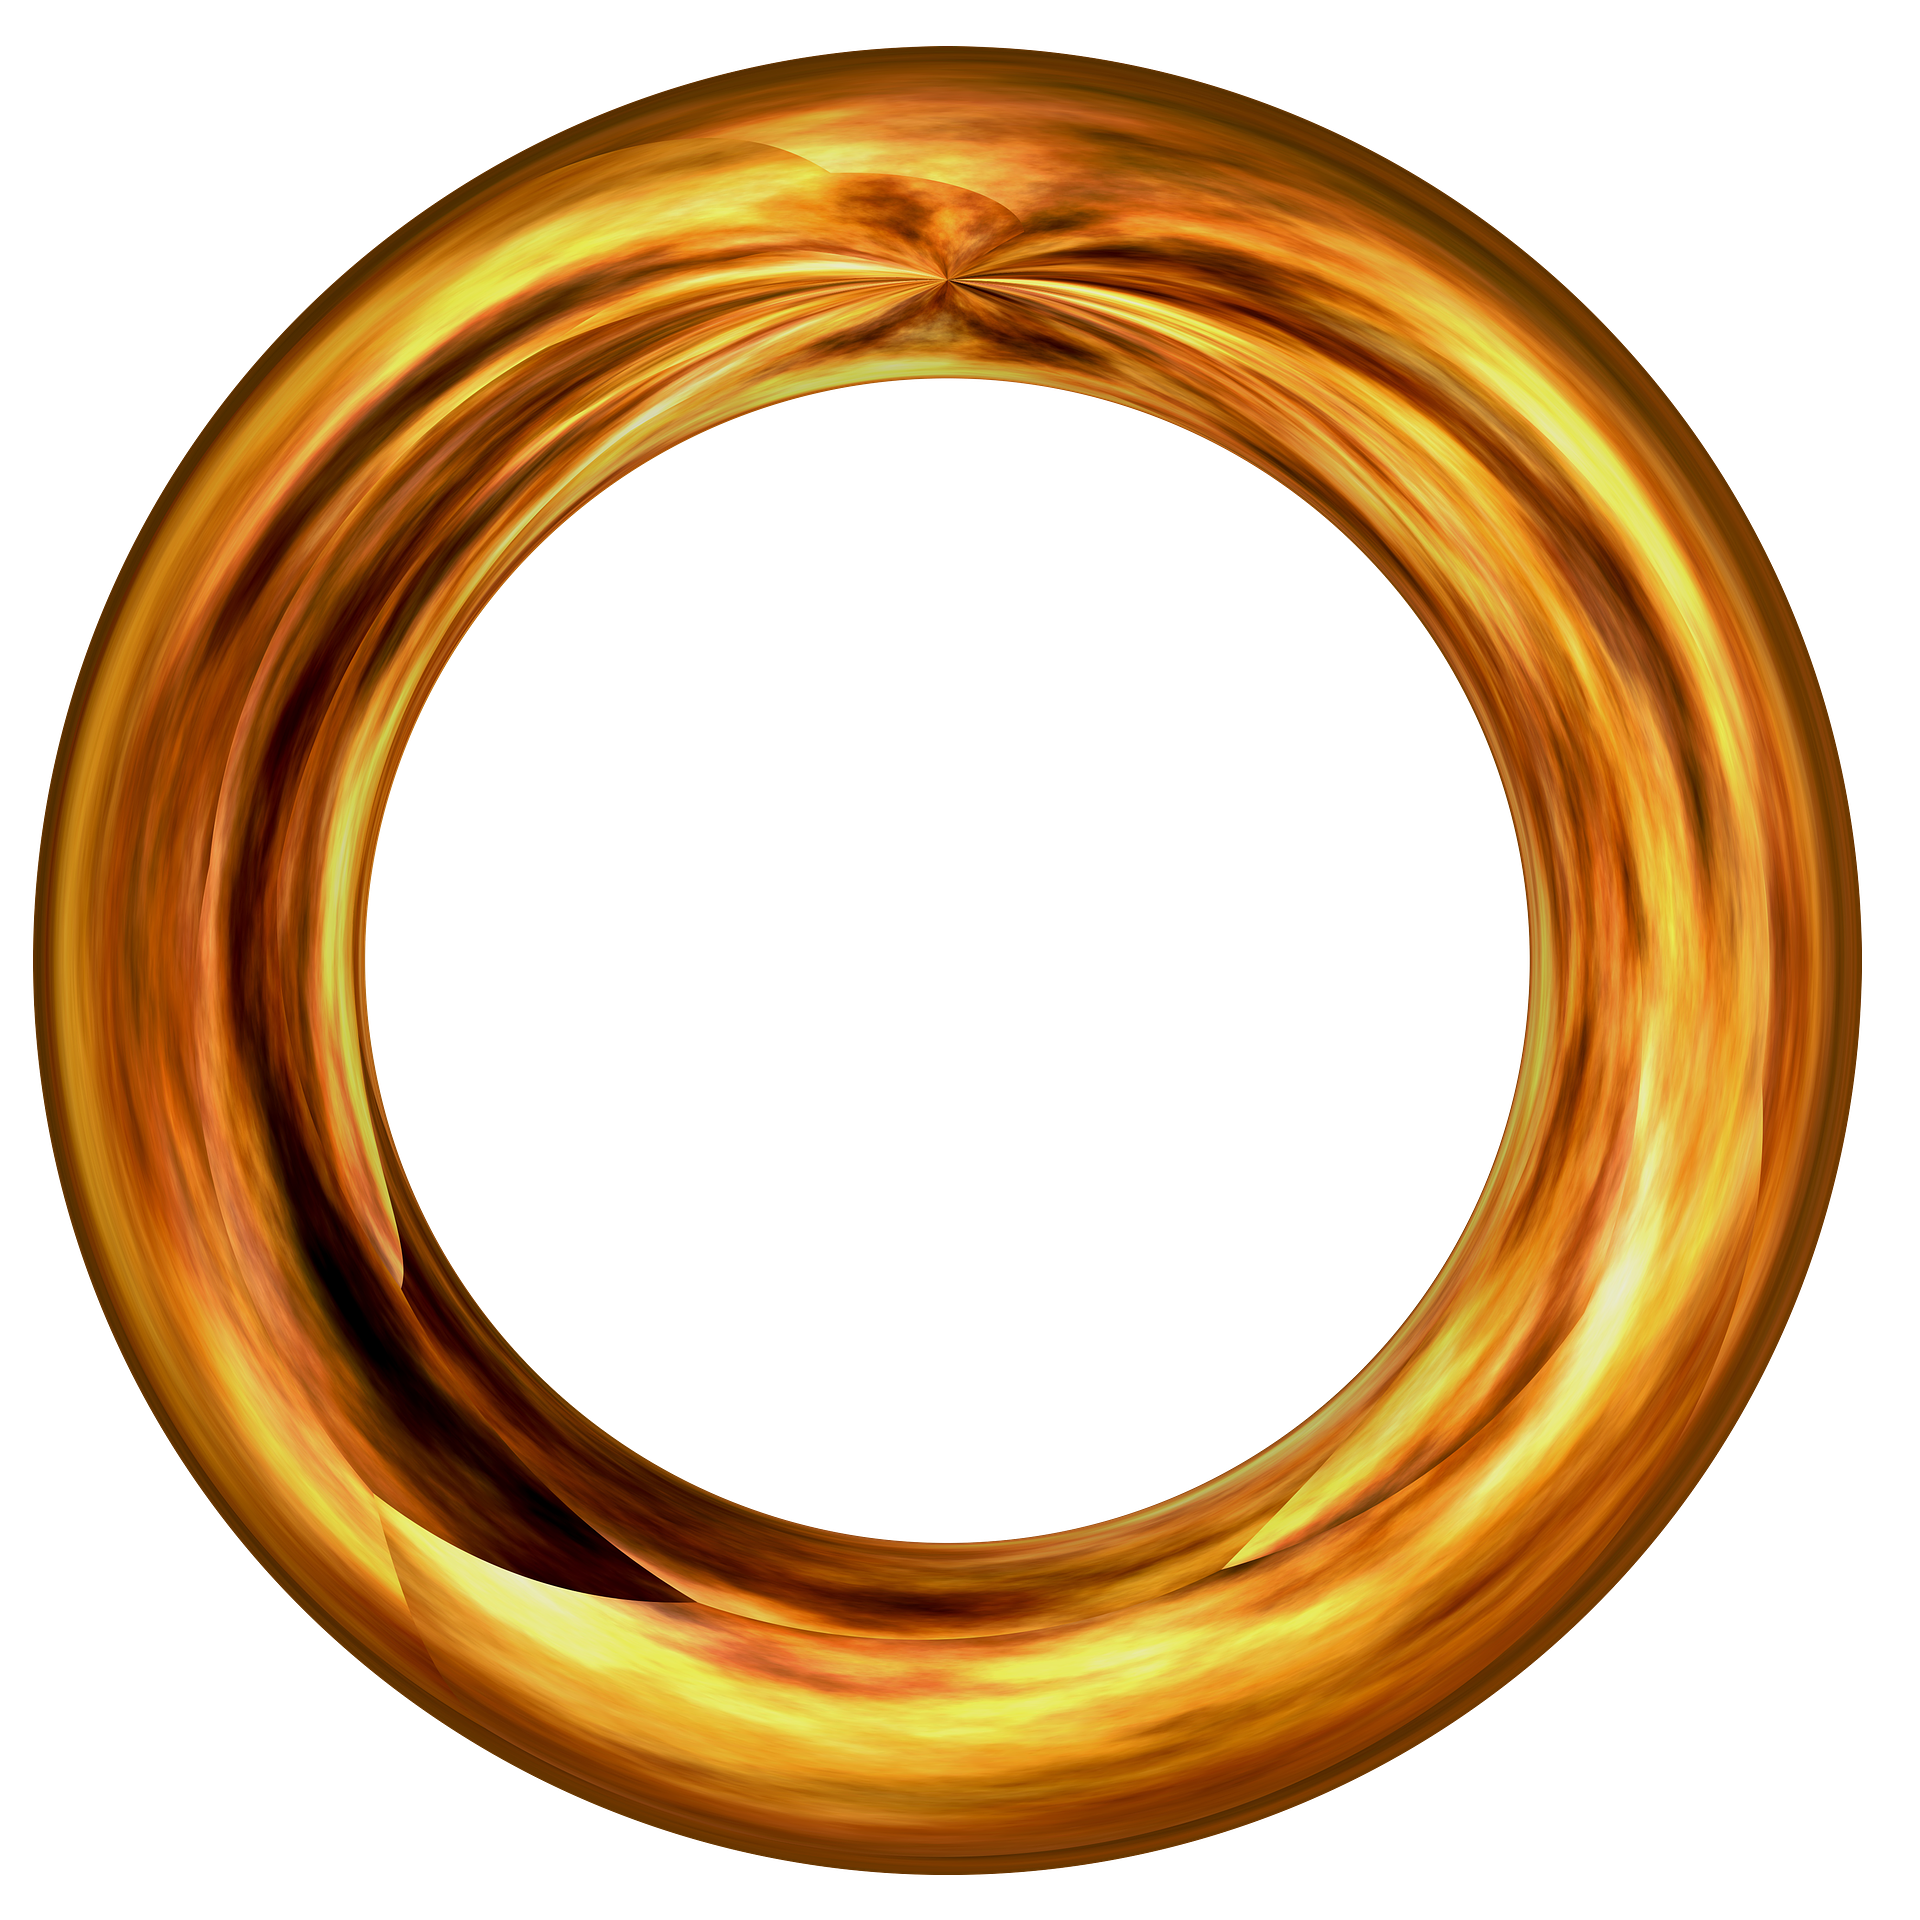 Sonic Ring Png Free Images Image Free Photos